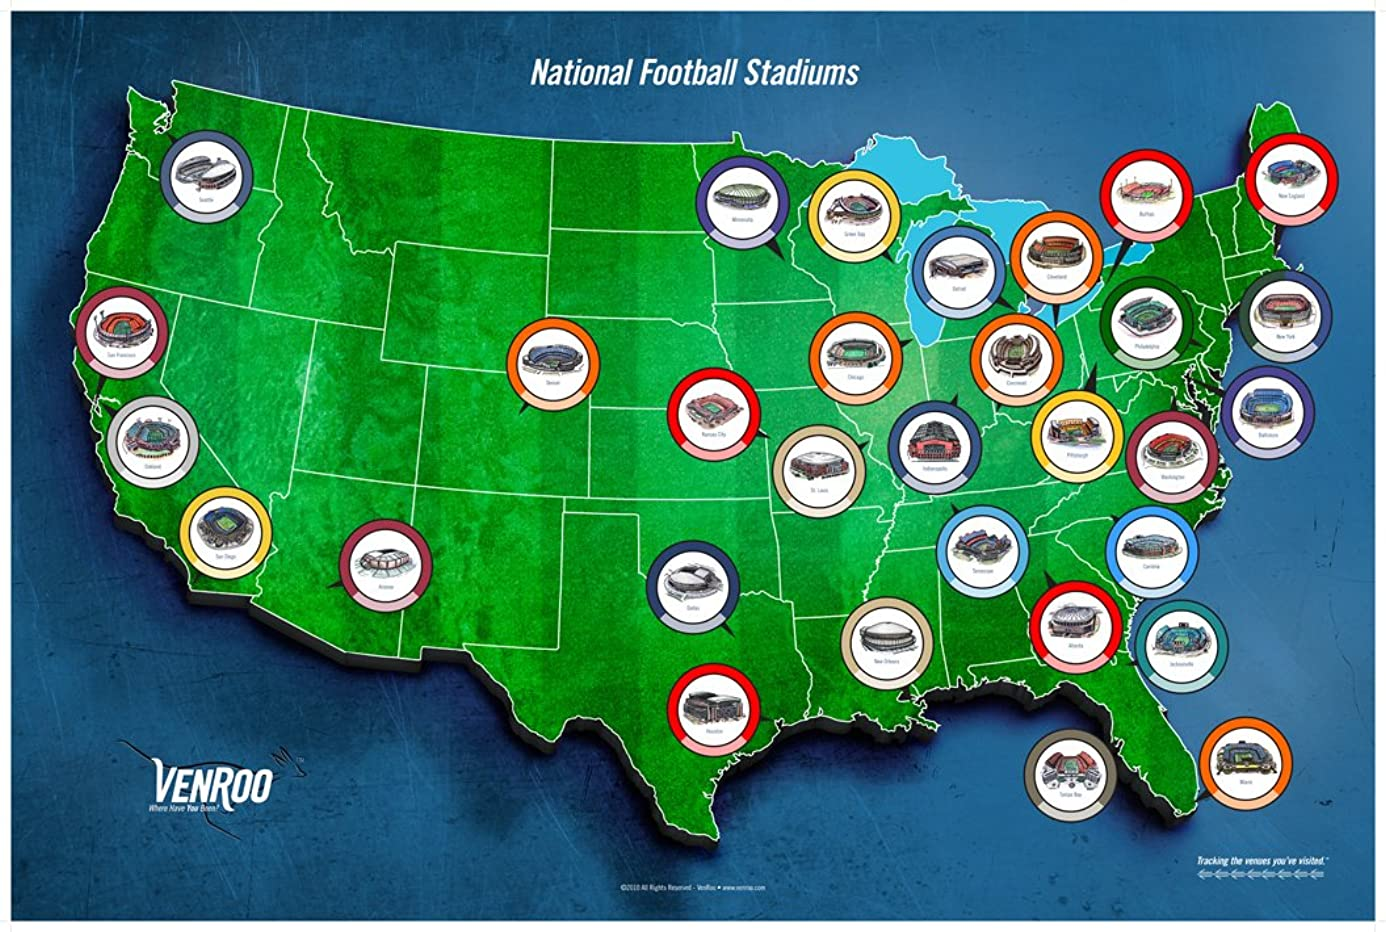 Pro Football Stadium Map Poster - Great Gift for Your Football Fan